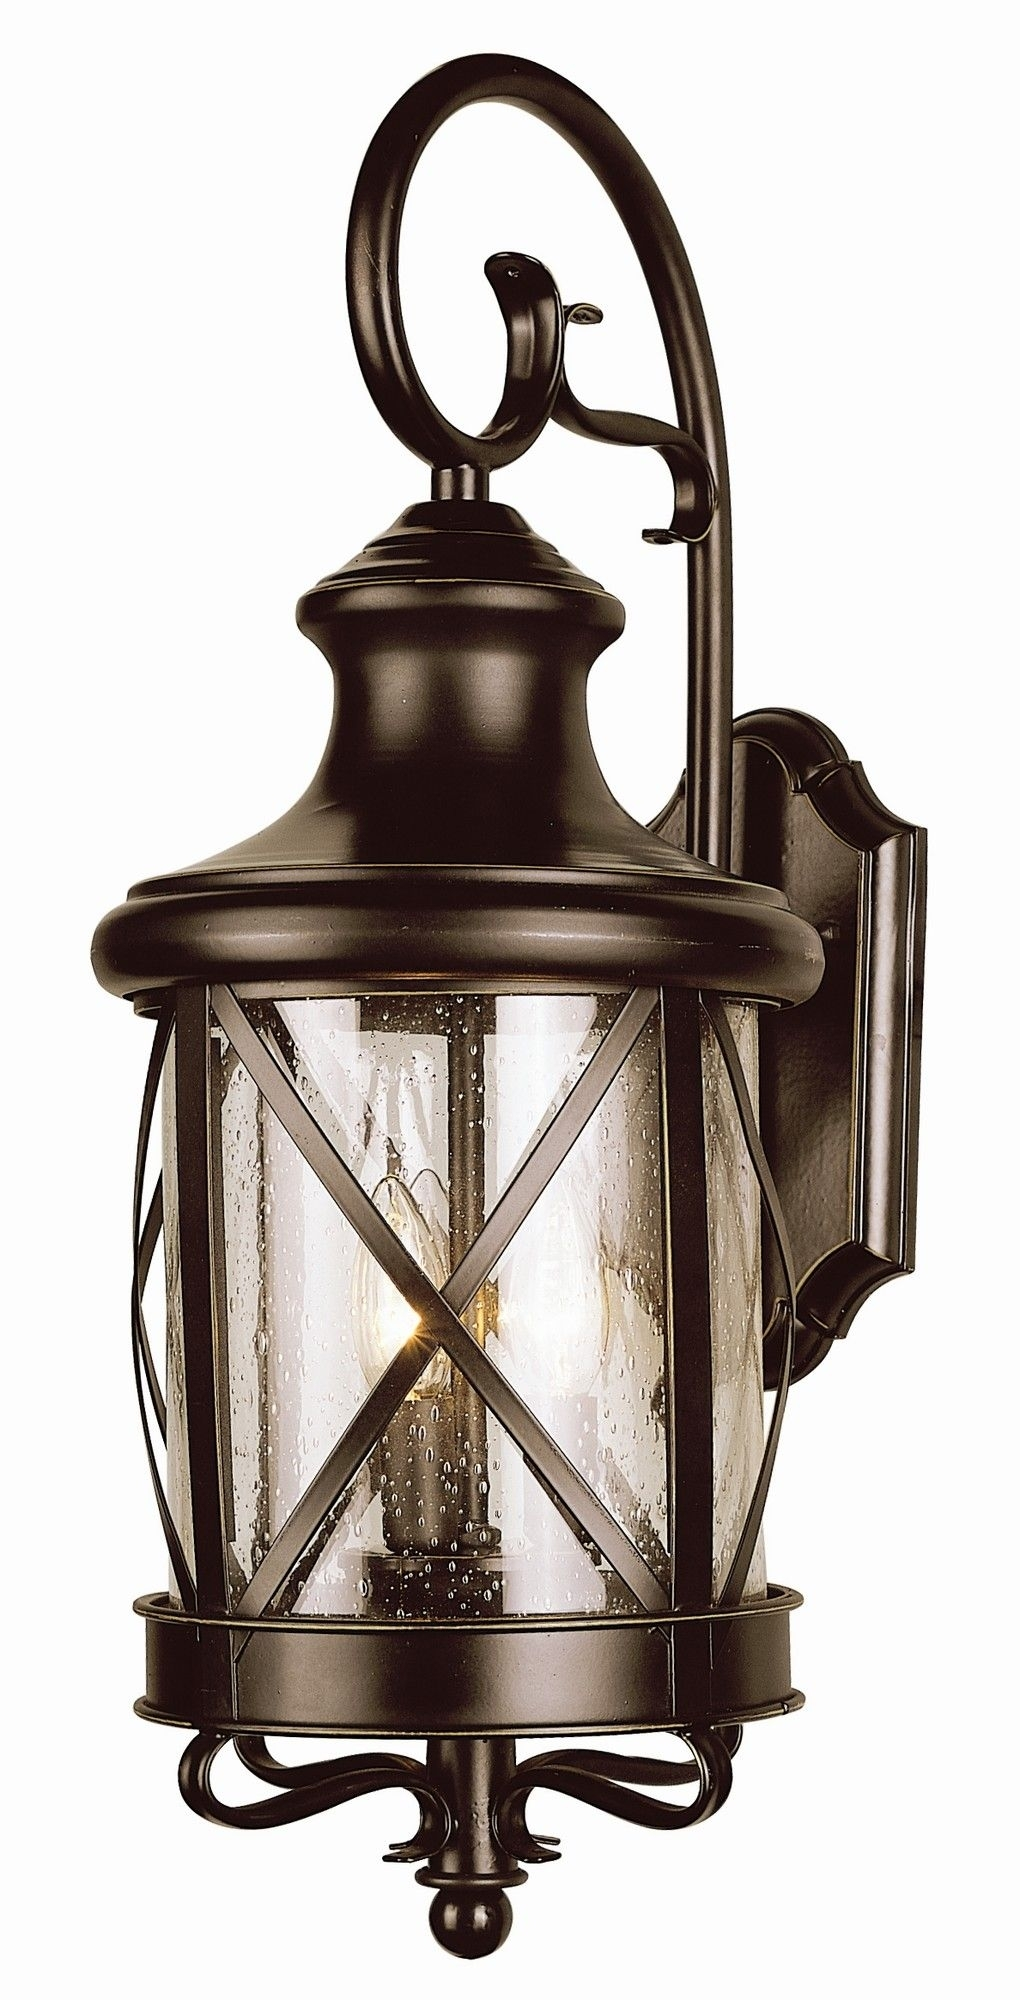 Transglobe Lighting Outdoor Wall Lantern | Wayfair | Lighting With Regard To Outdoor Wall Garage Lights (#15 of 15)